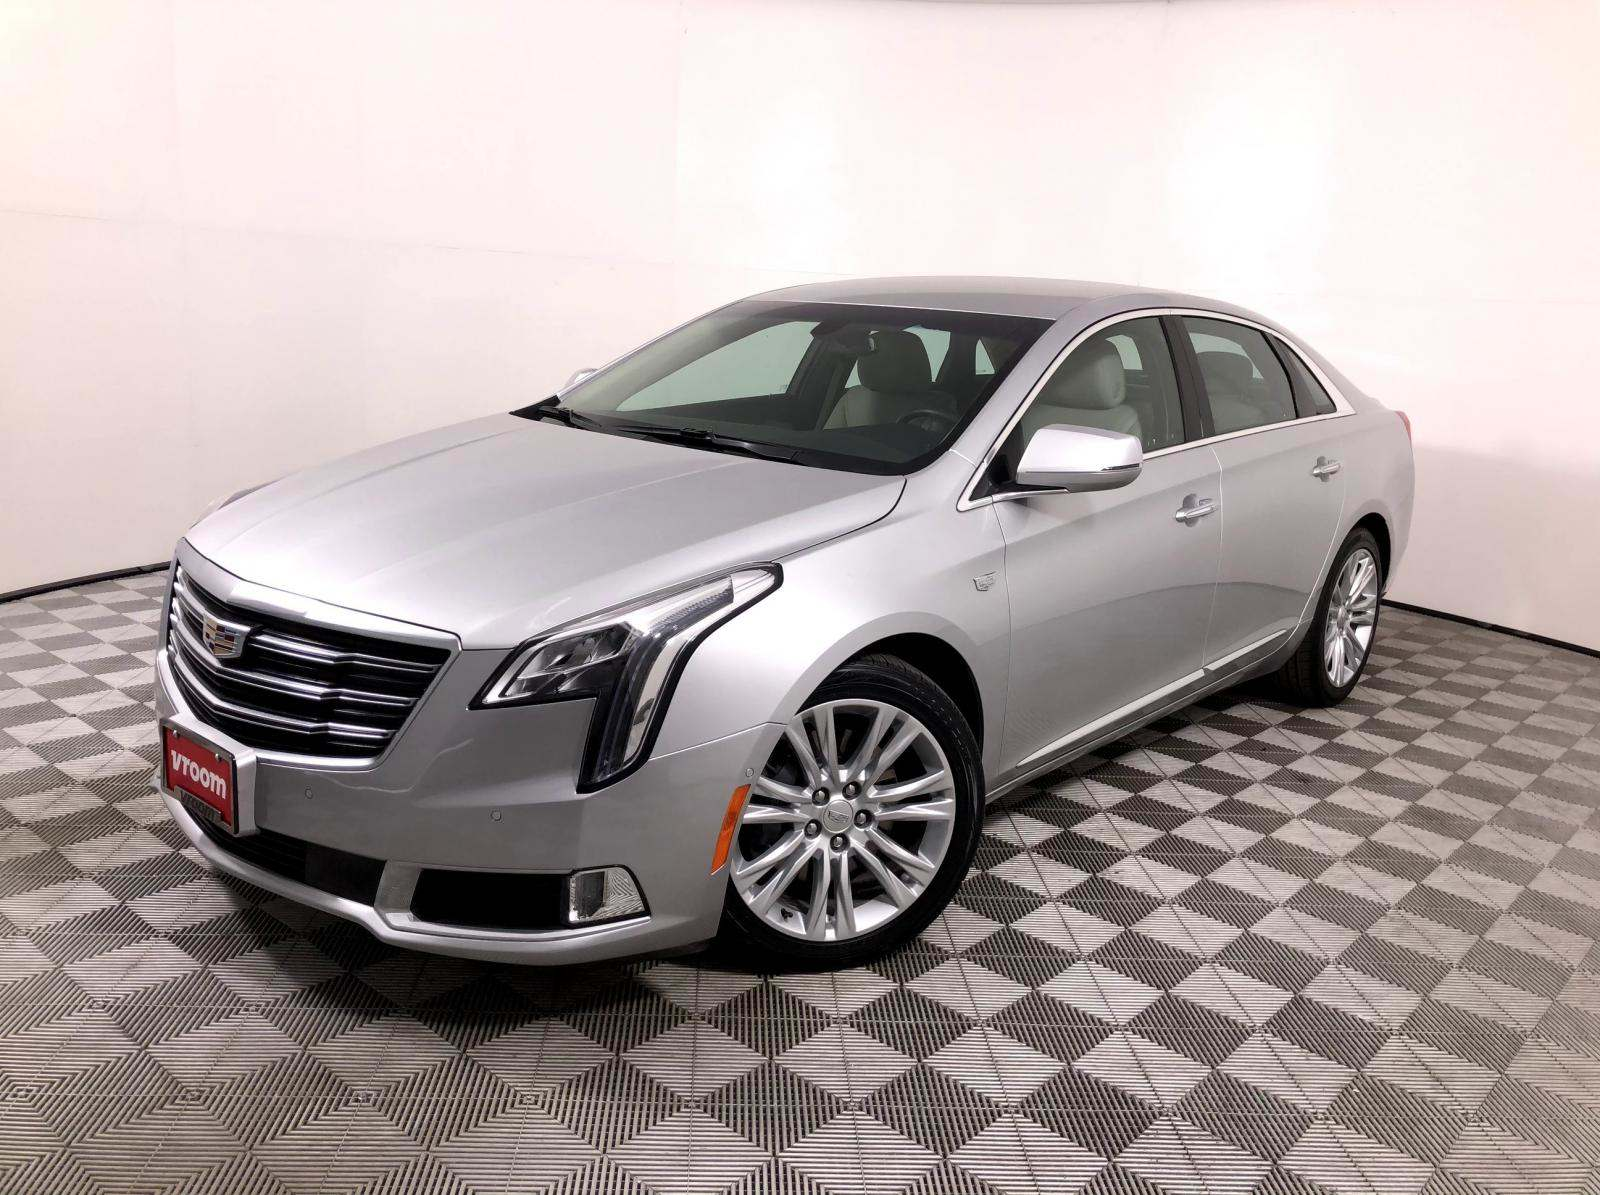 Xts For Sale >> Used 2019 Cadillac Xts For Sale 26 310 Vroom